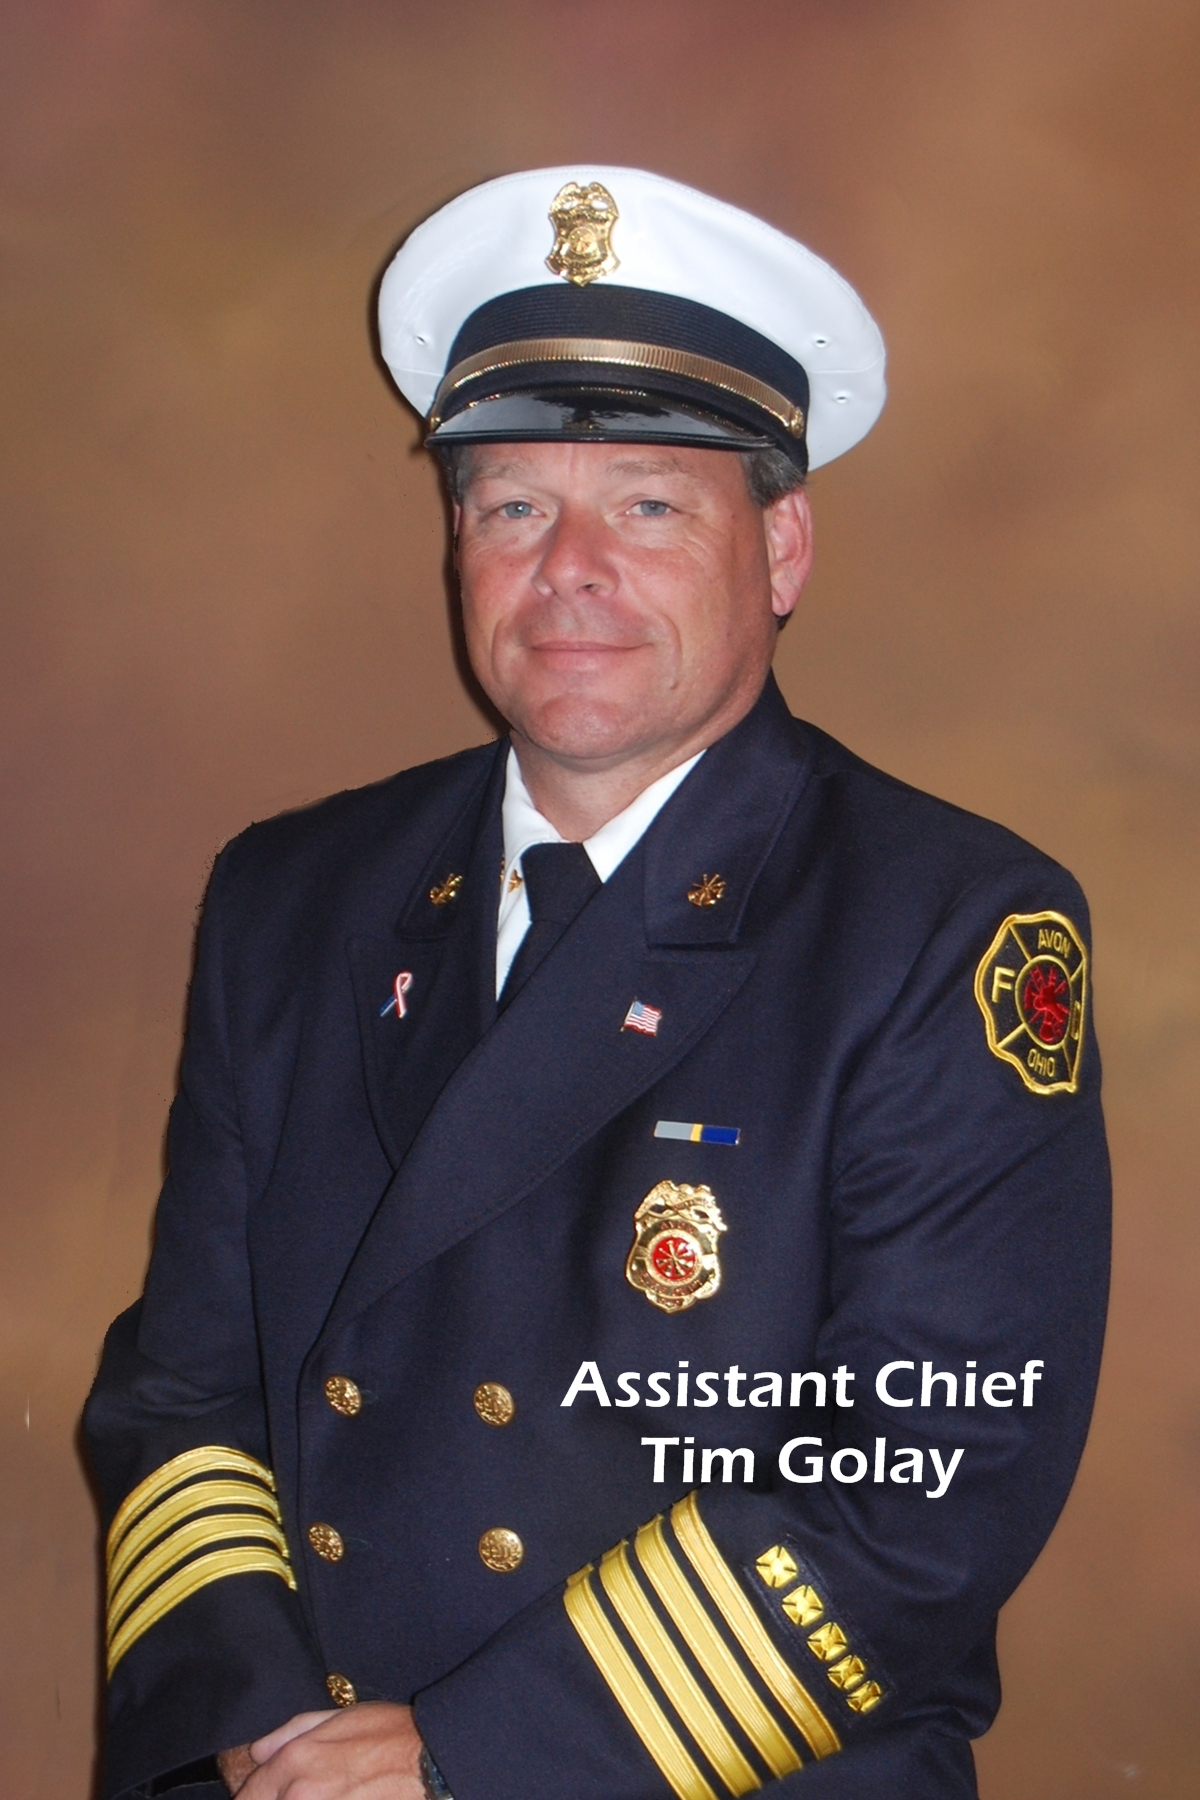 Assistant Chief Tim Golay